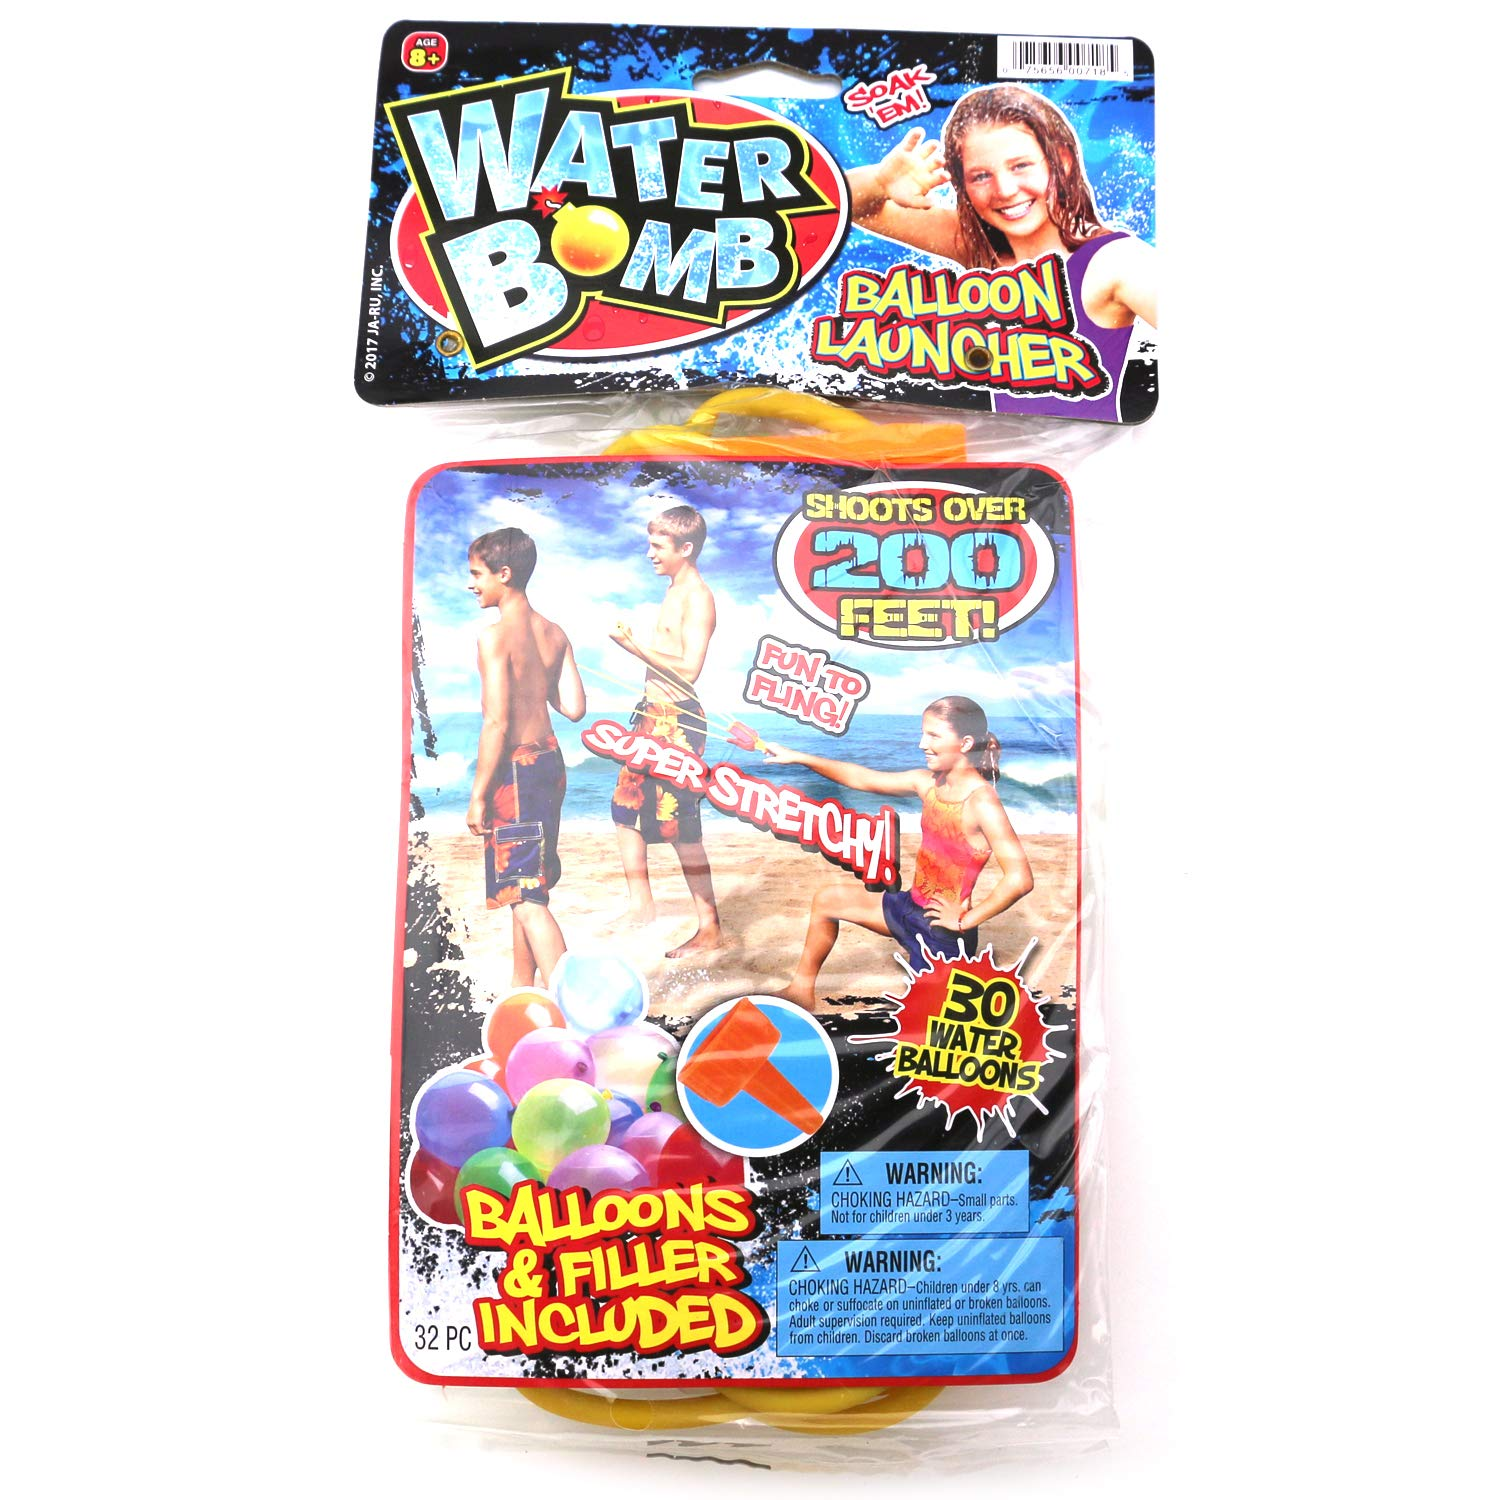 Ultimate 10 Piece Water Balloon Set 855 Water Balloons, Slinger, Carry Tote, Refill Gun, Water Balloon laucher Slingshot Water Balloon Party with 2 GosuToys Stickers by Gosu Toys (Image #5)